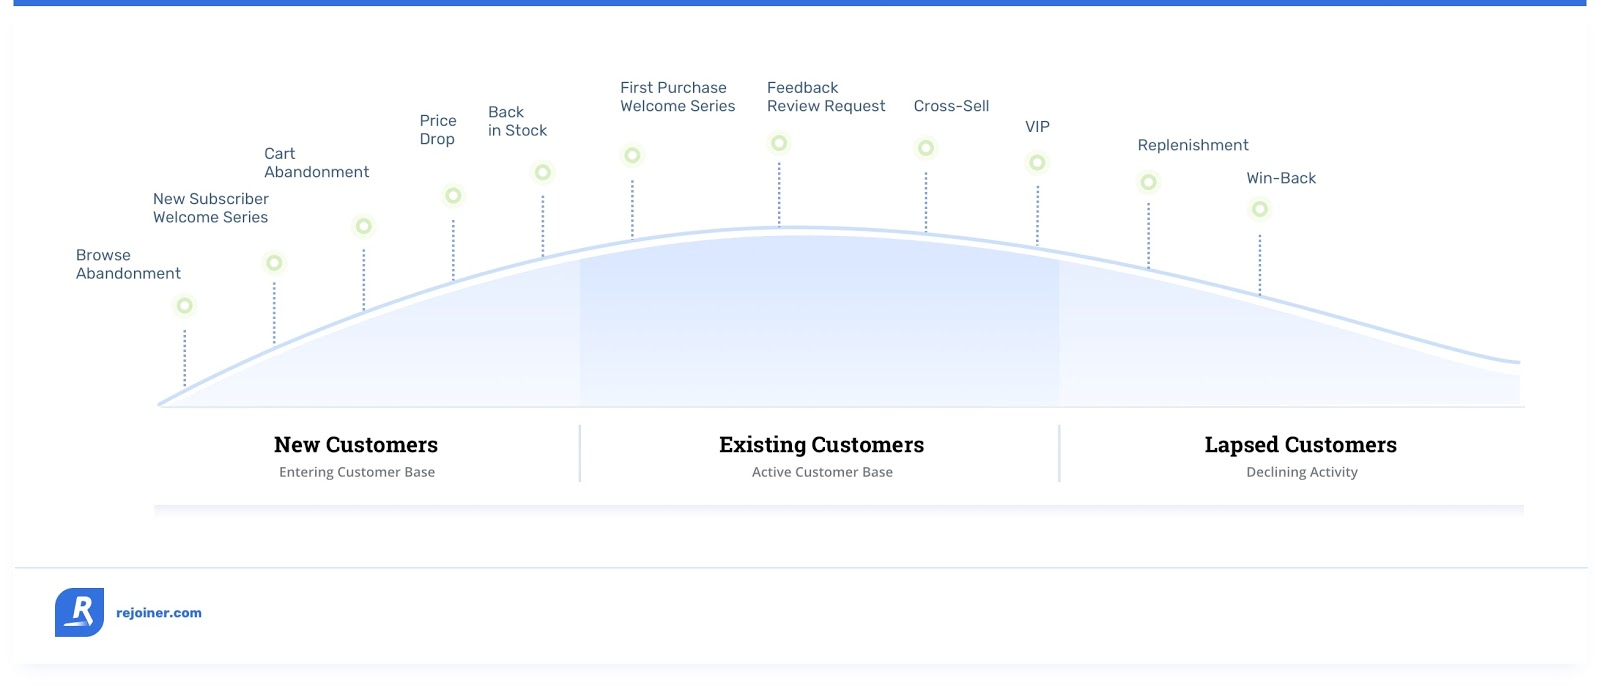 Customer journey chart showing new customers, existing customers, lapsed customers, and lapsed customers and where cart abandonment happens and the road to winning them back.